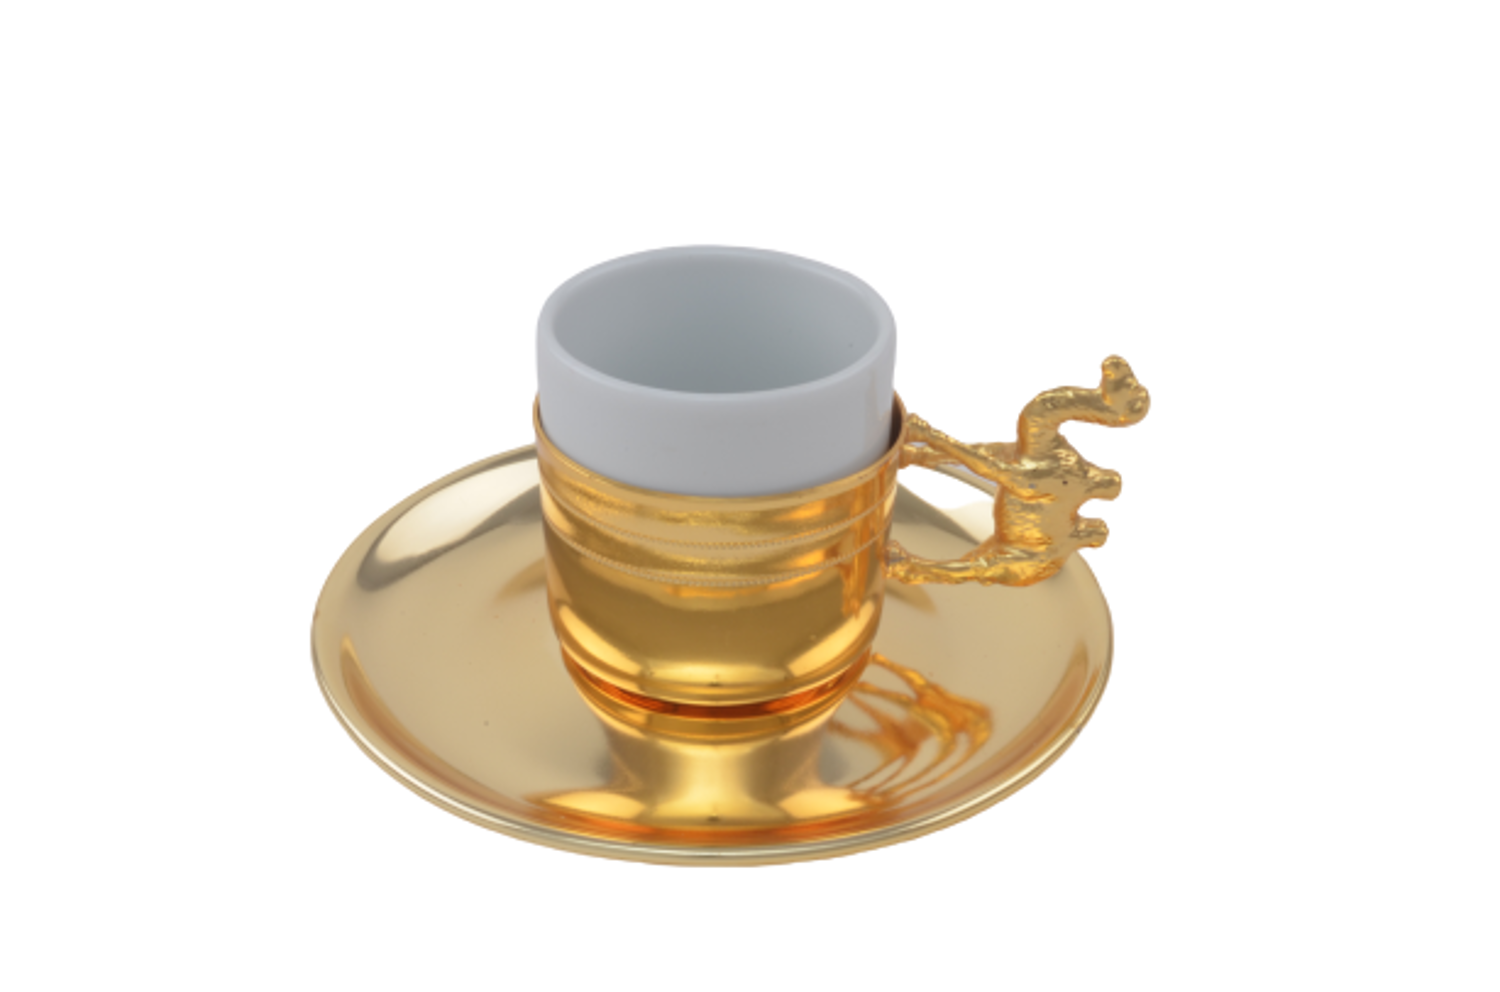 Picture of MEVLANA TURKISH COFFEE CUP GOLD CAMEL